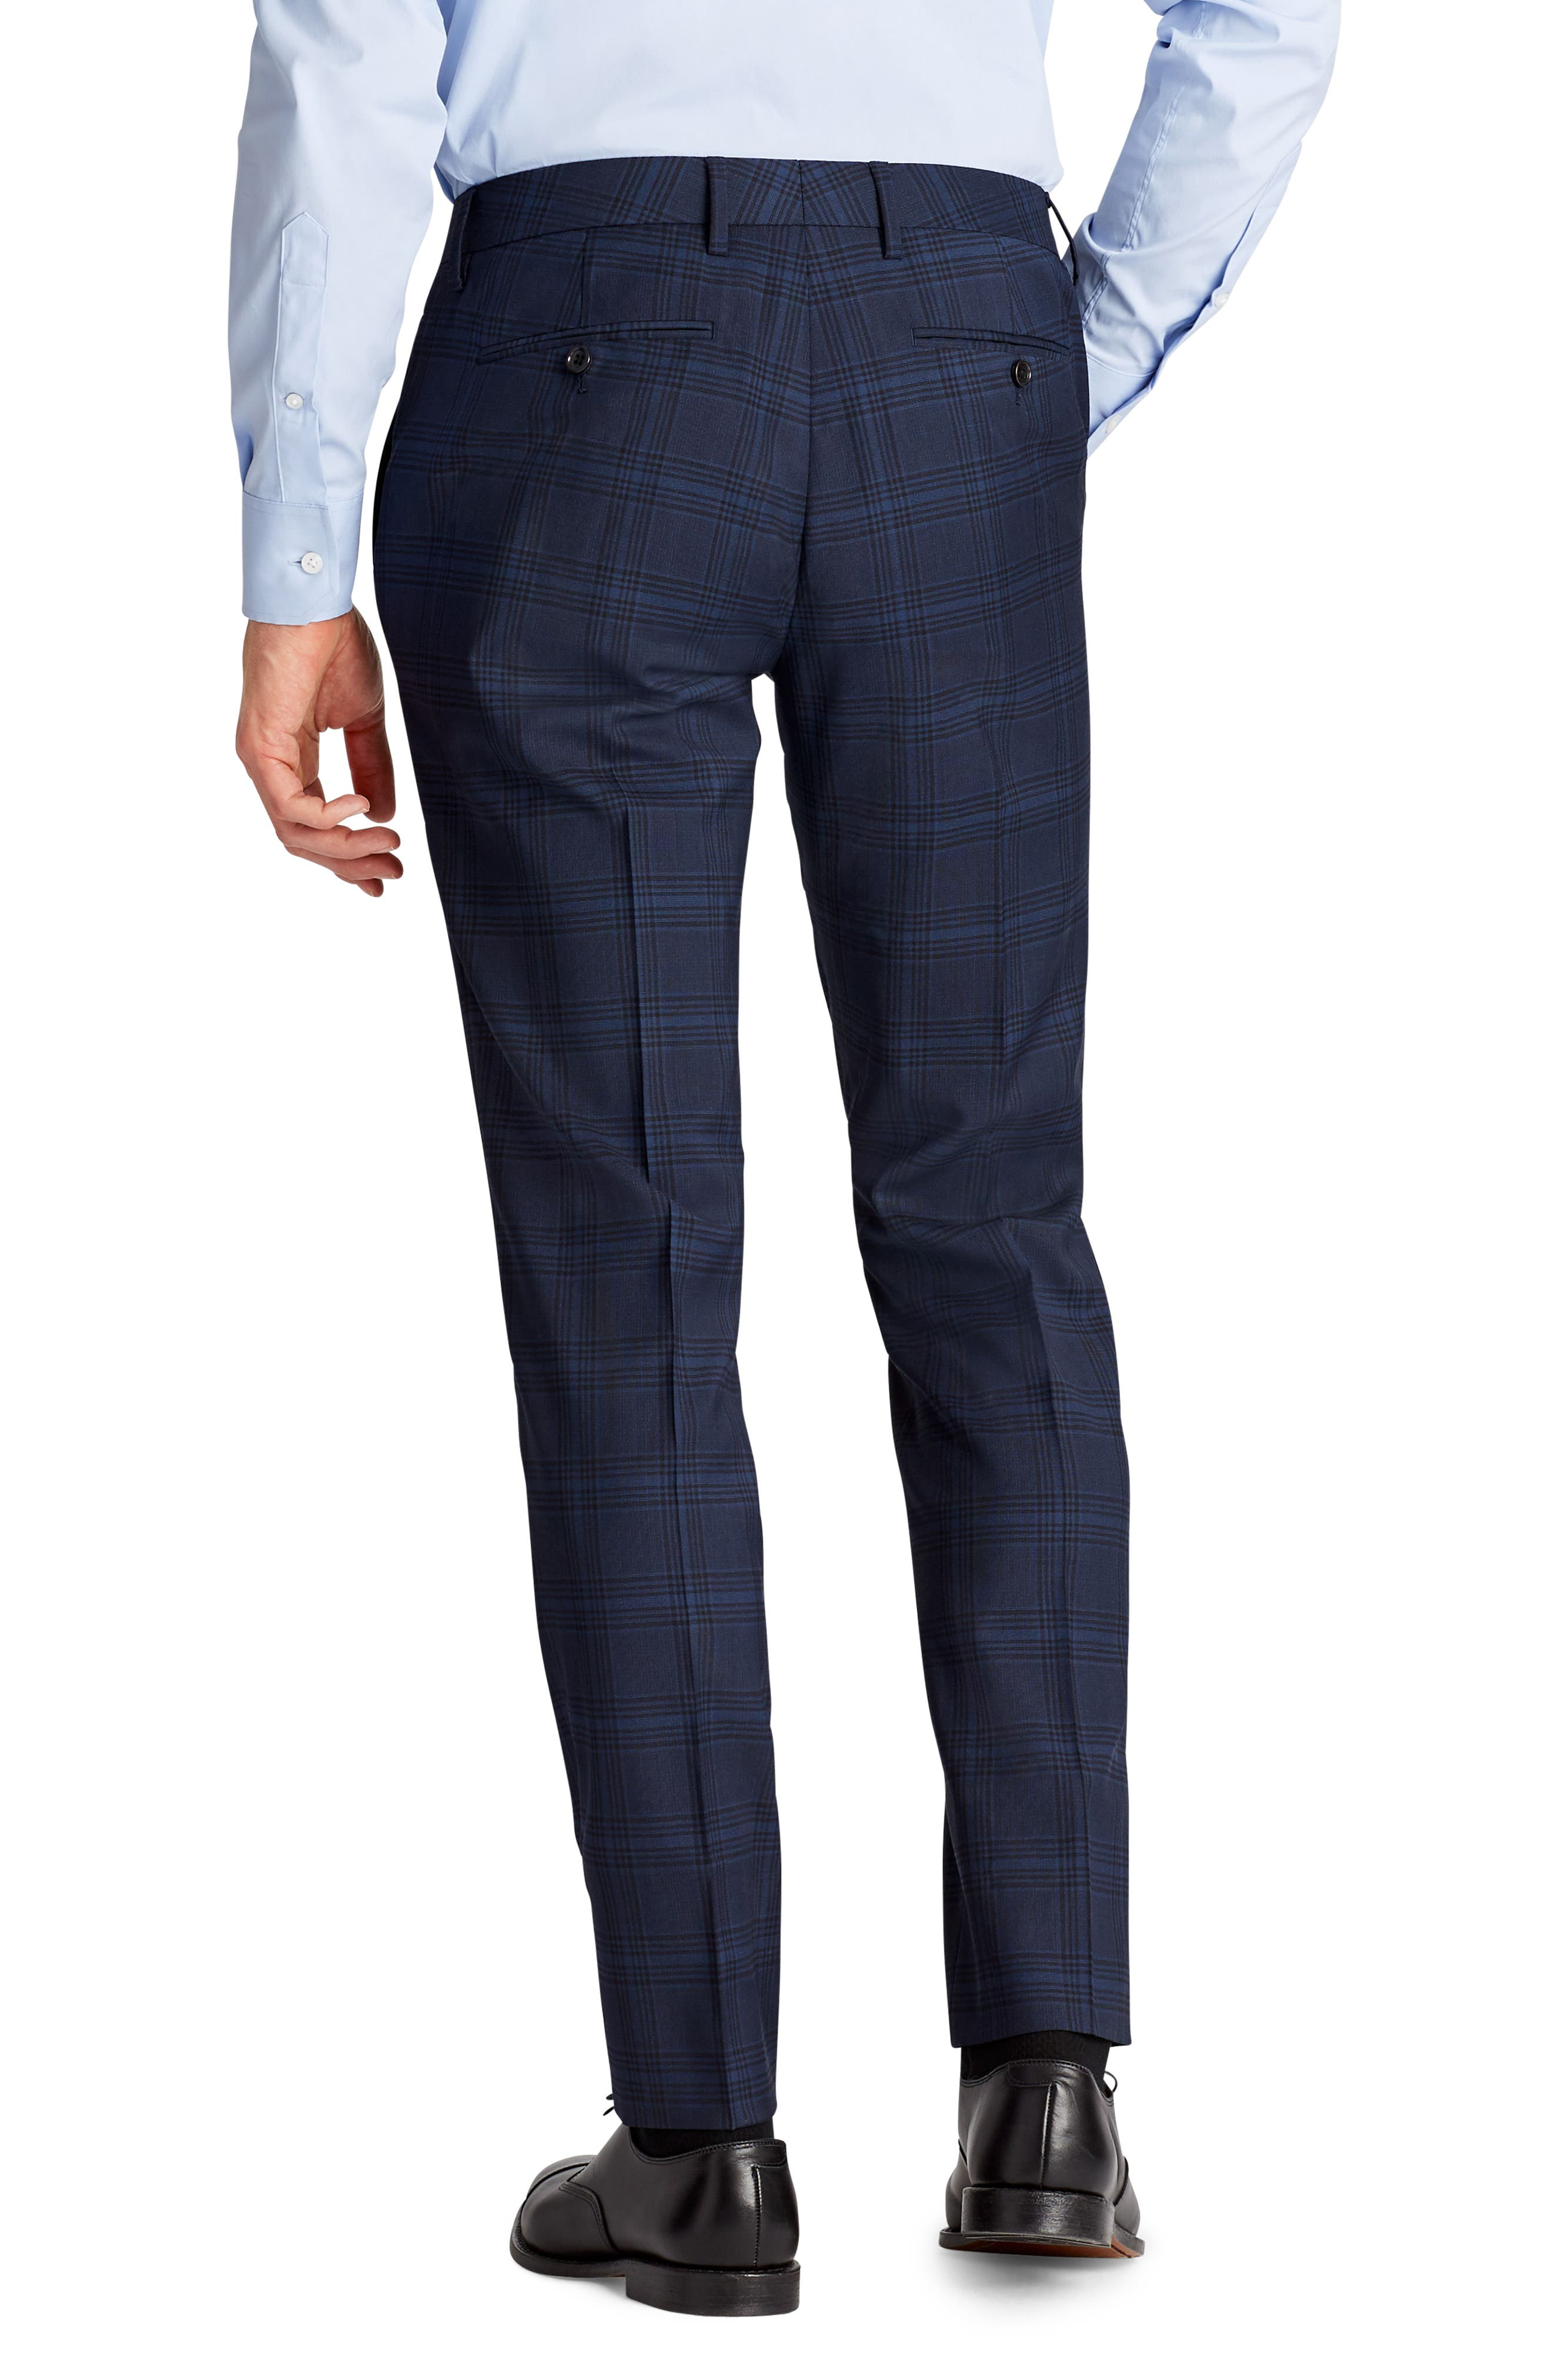 Jetsetter Flat Front Stretch Plaid Wool Blend Trousers,                             Alternate thumbnail 2, color,                             400